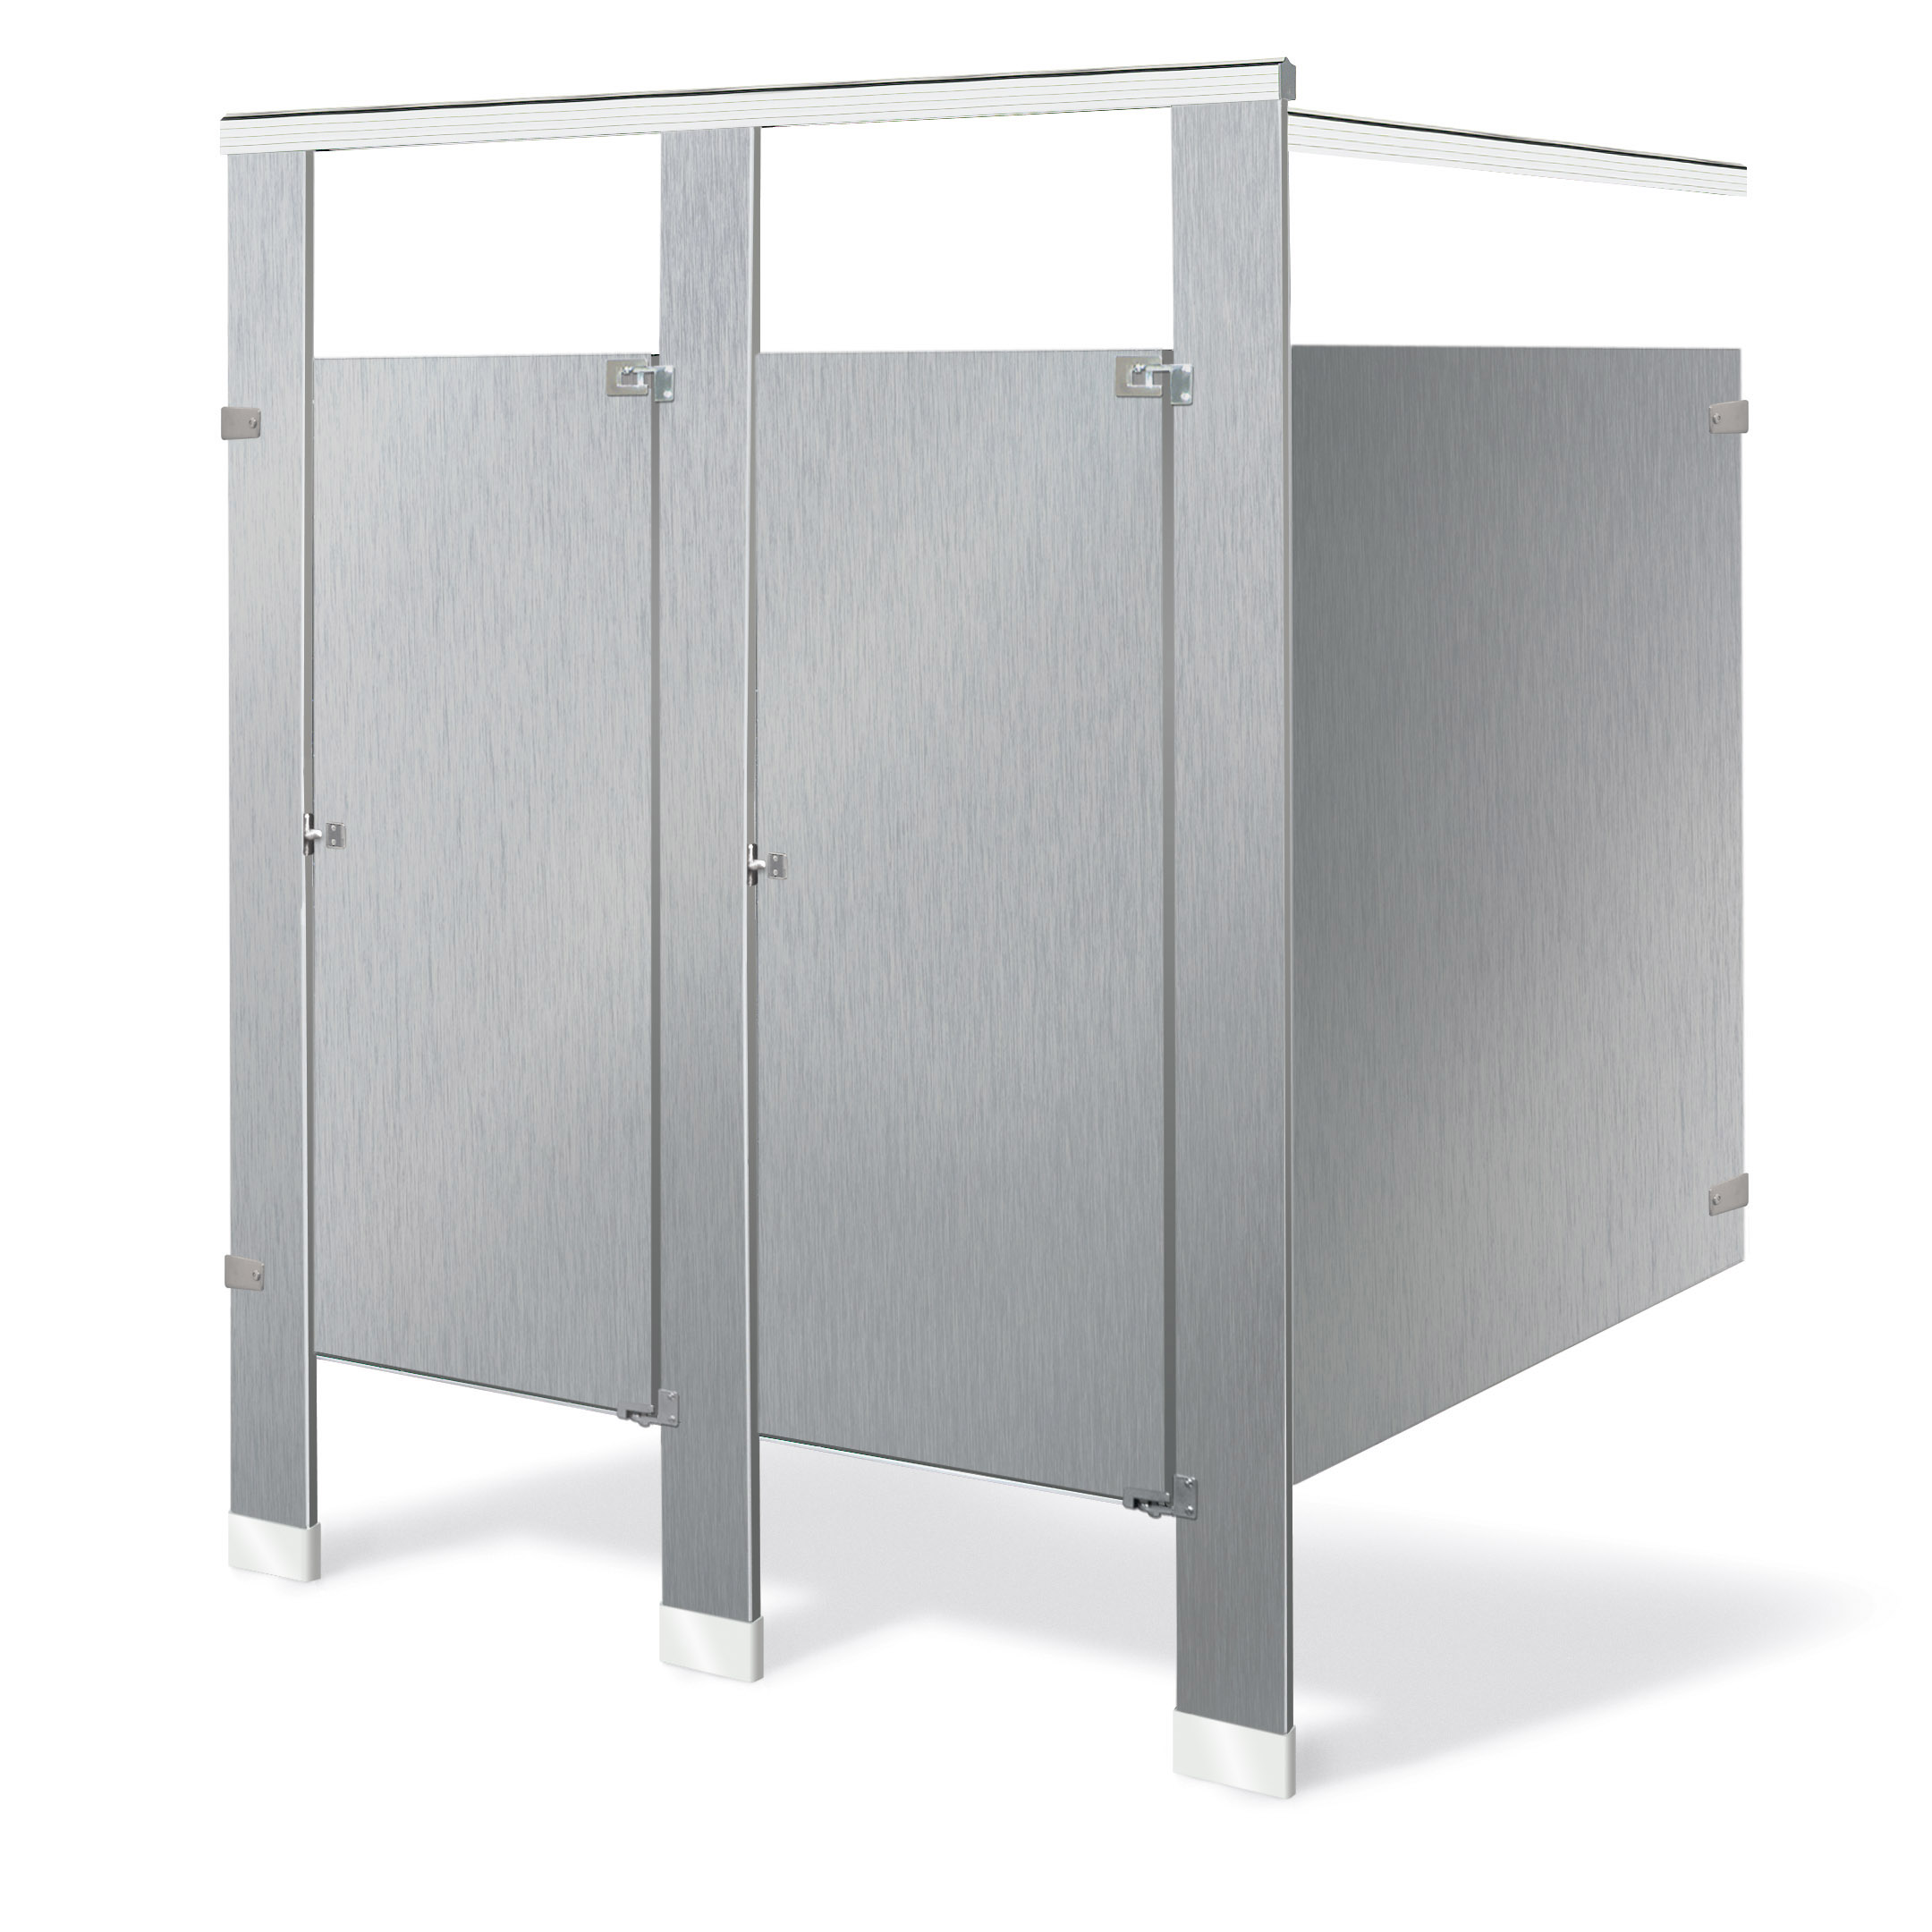 bathroom stall door. Sentinel™ Floor Mounted- Overhead Braced. Series 400 Toilet Partitions Bathroom Stall Door